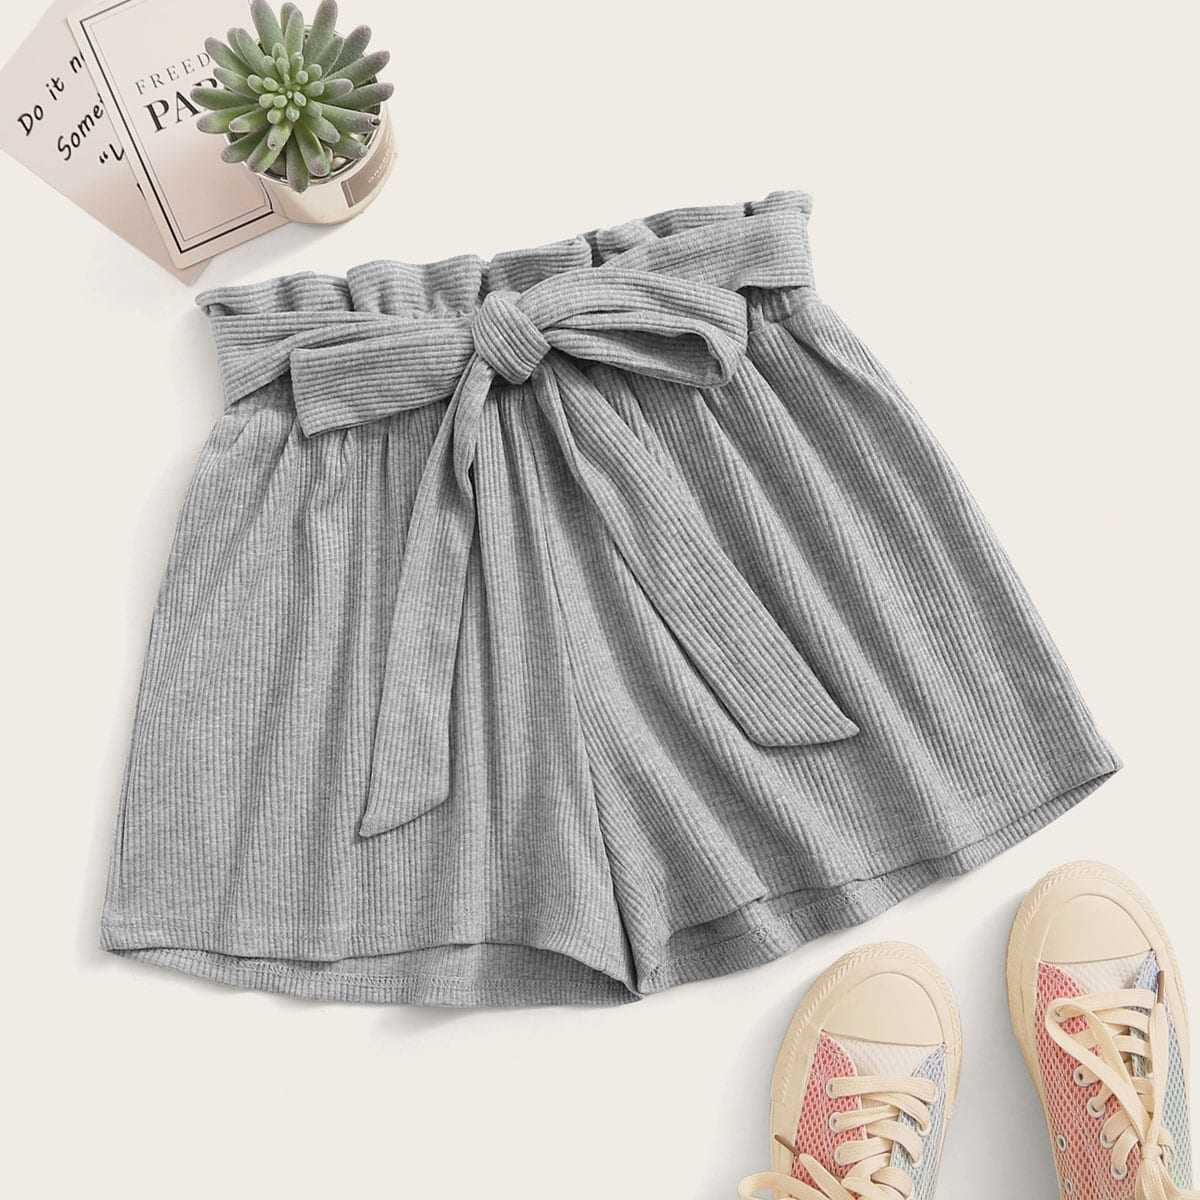 Solid Wide Leg Belted Paperbag Shorts in Grey by ROMWE on GOOFASH